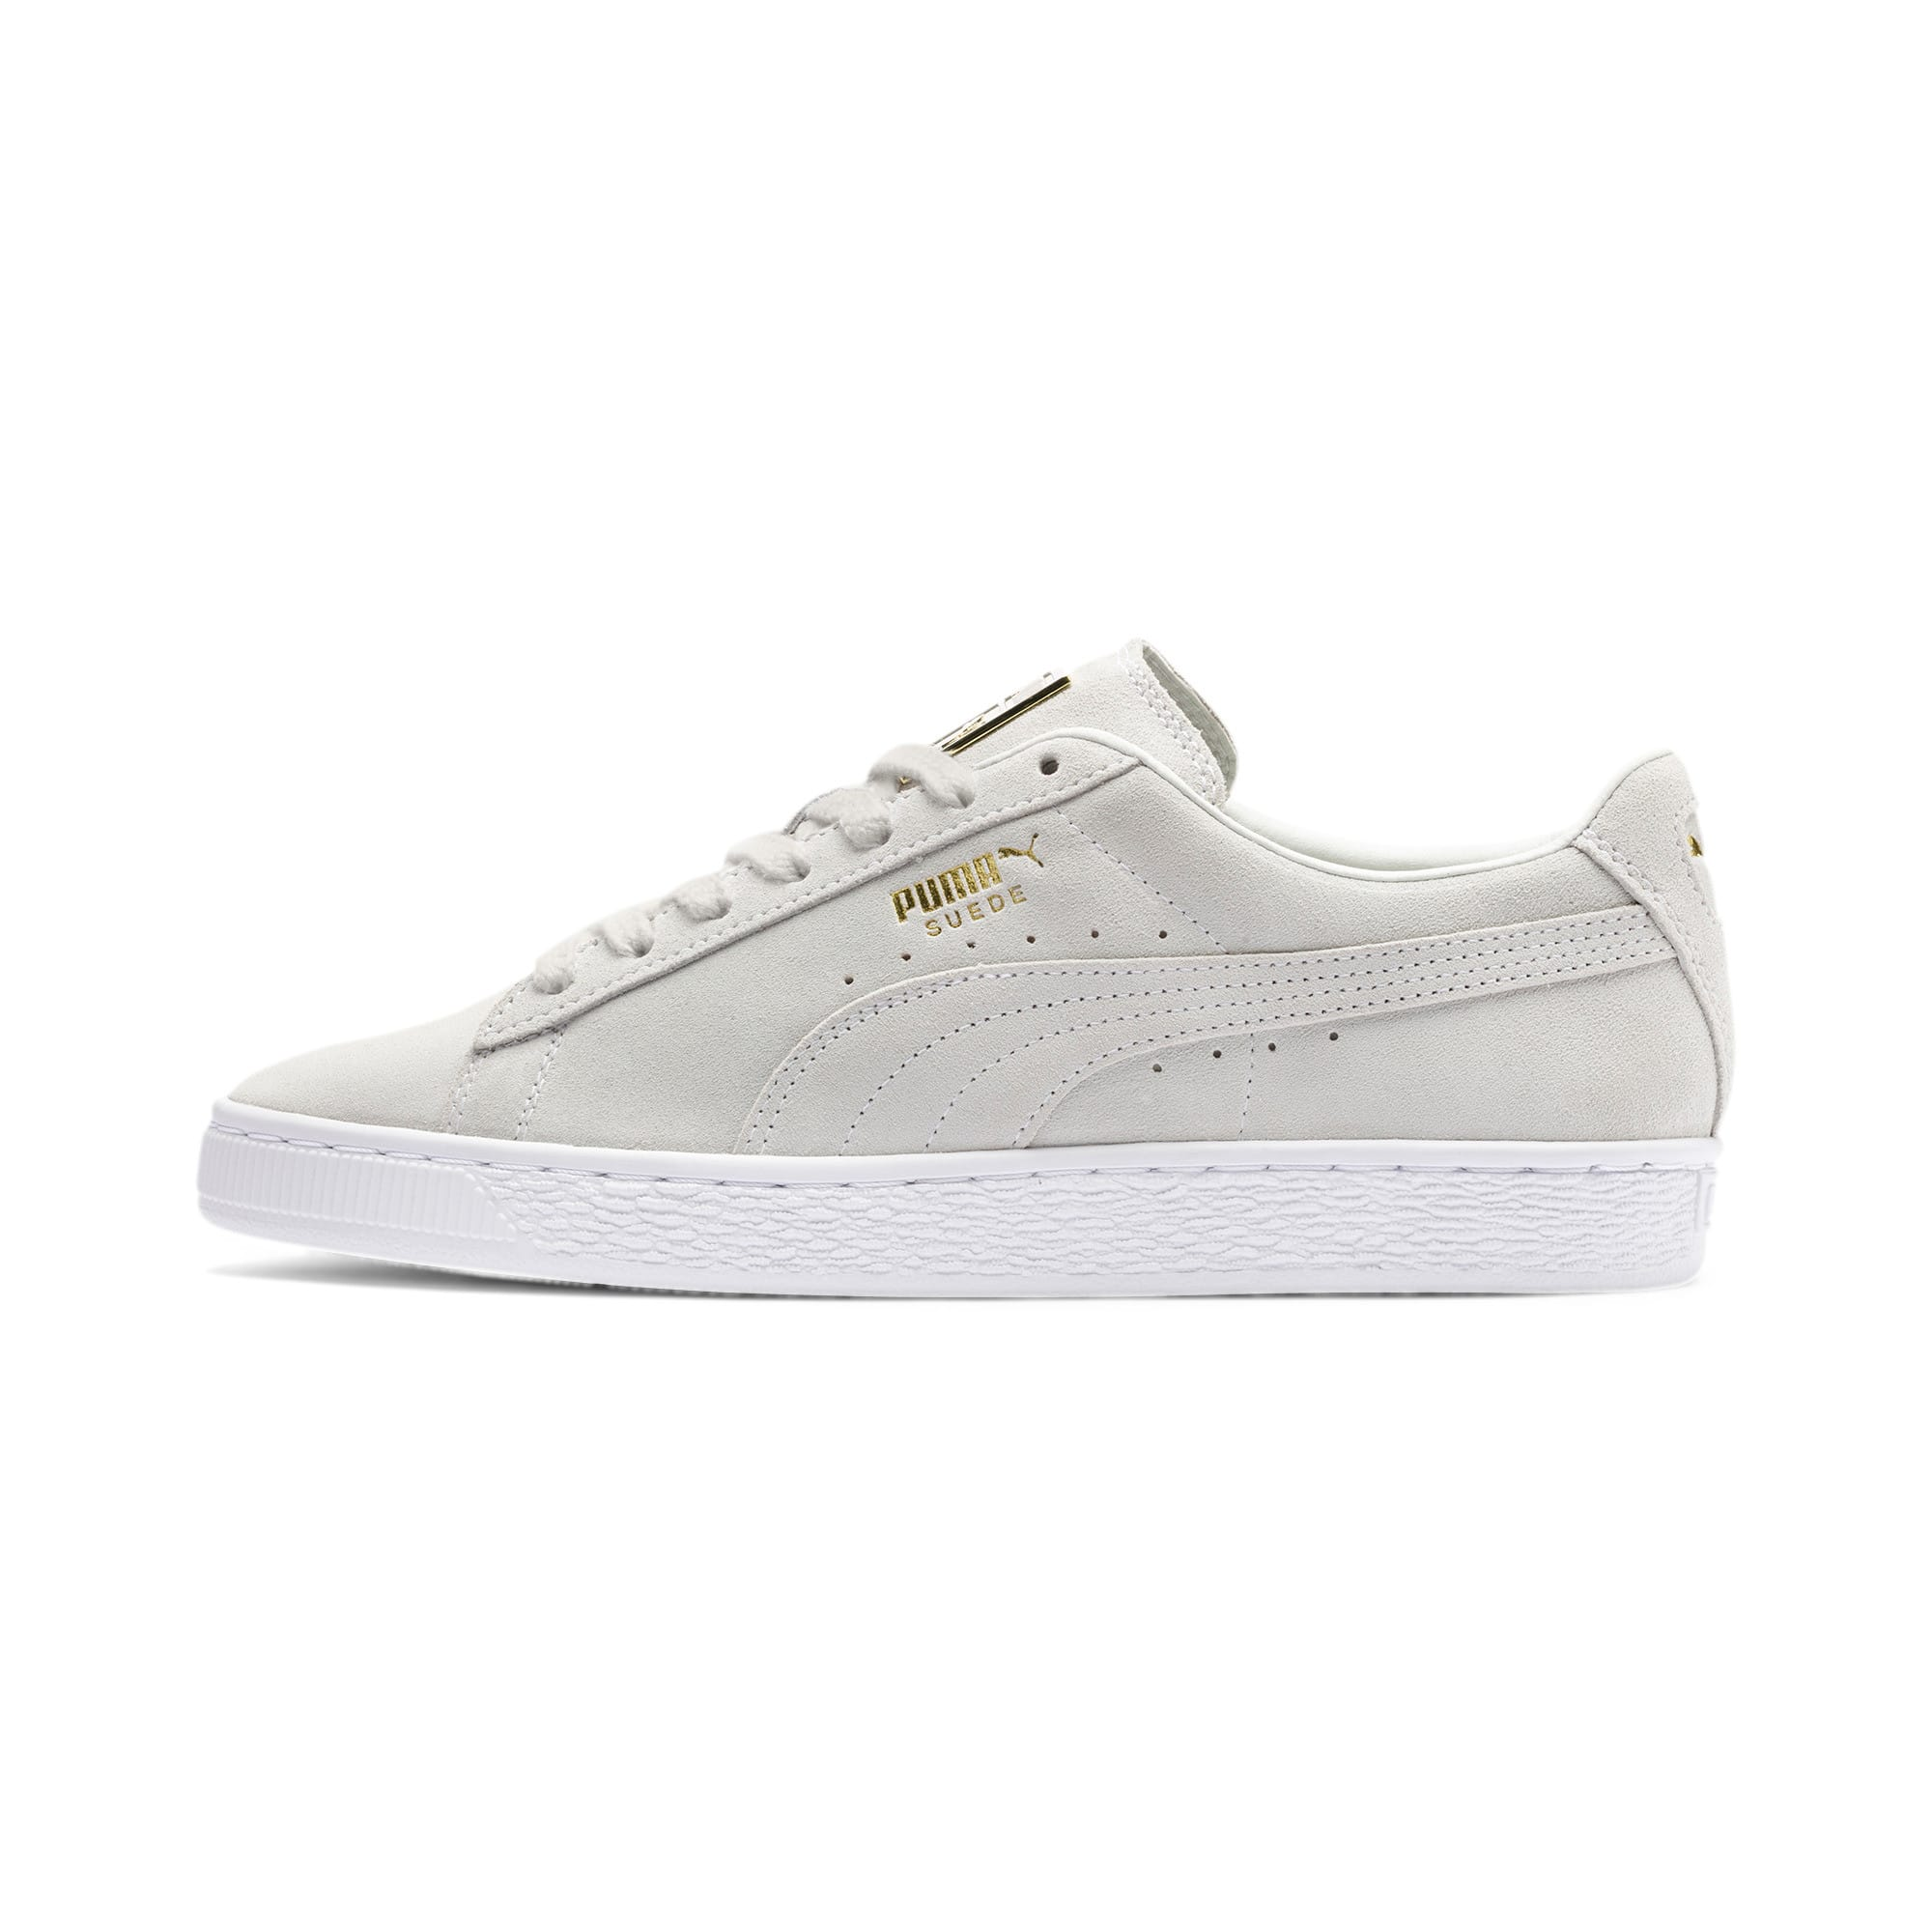 Thumbnail 1 of Suede Classic Metal Badge sportschoenen, Puma White-White-Team Gold, medium